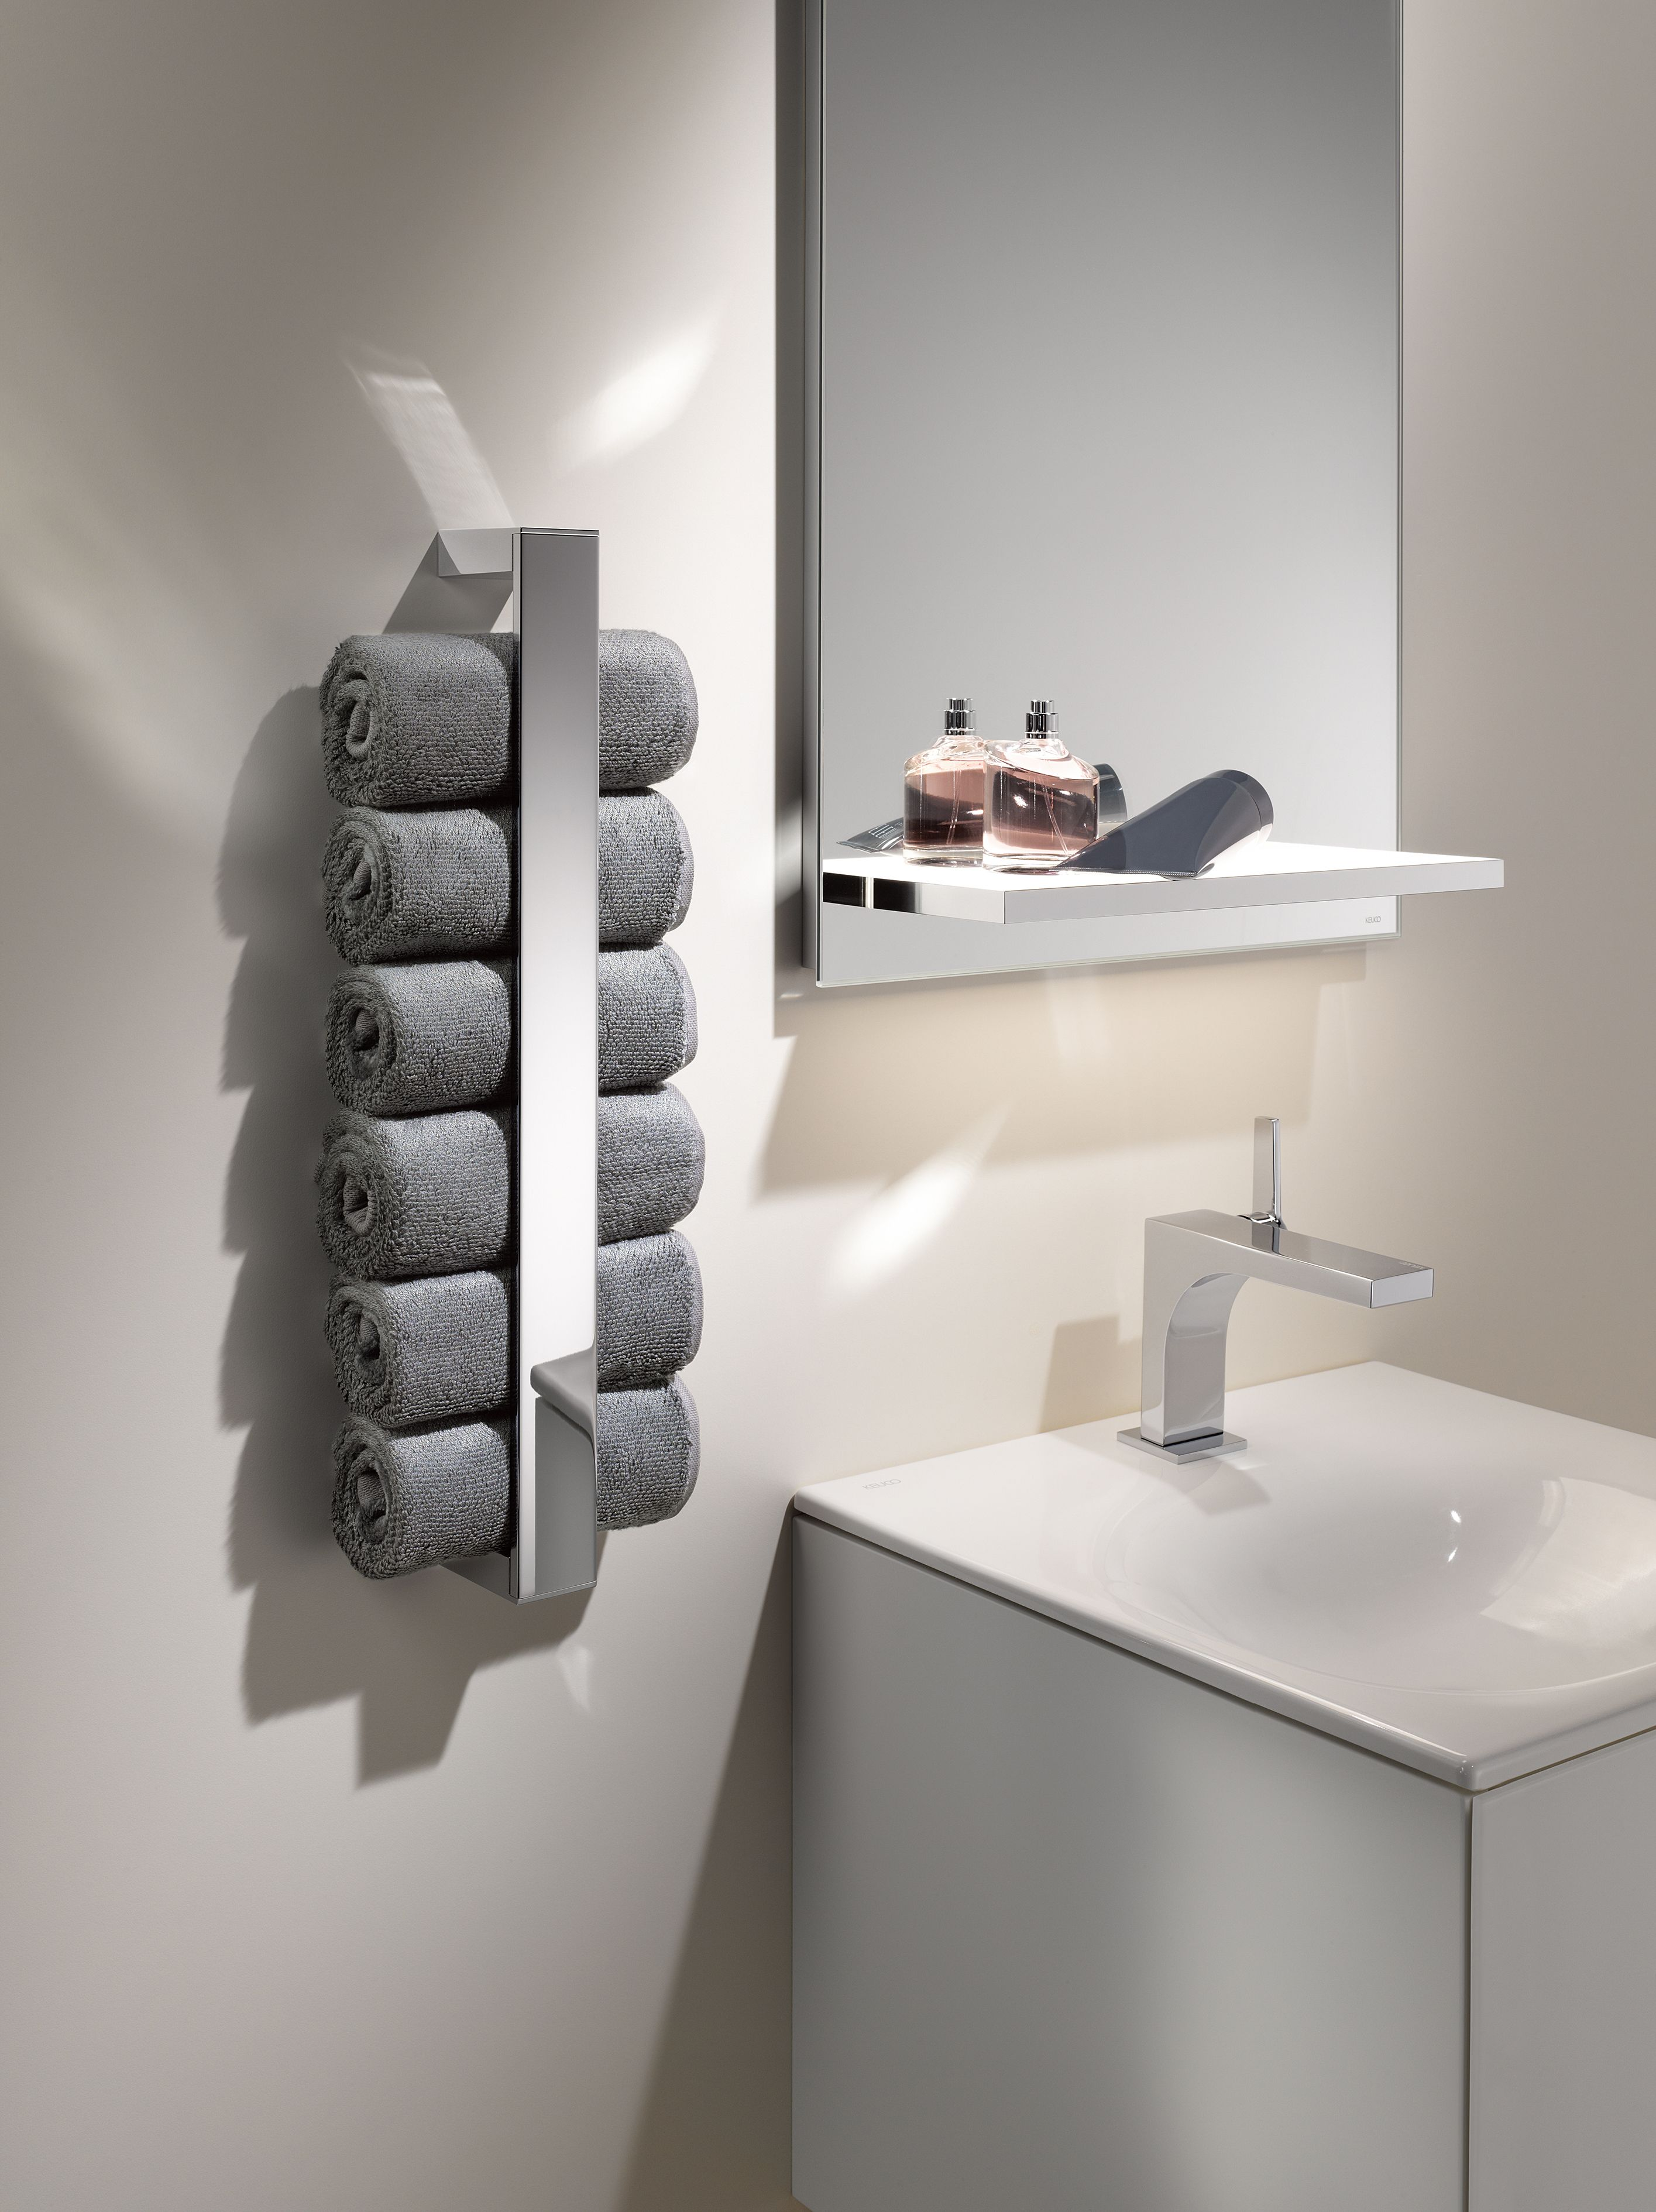 Handtuchhalter Gäste Wc Keuco Towel Holder Edition 11 Edition11 Accessories Clean